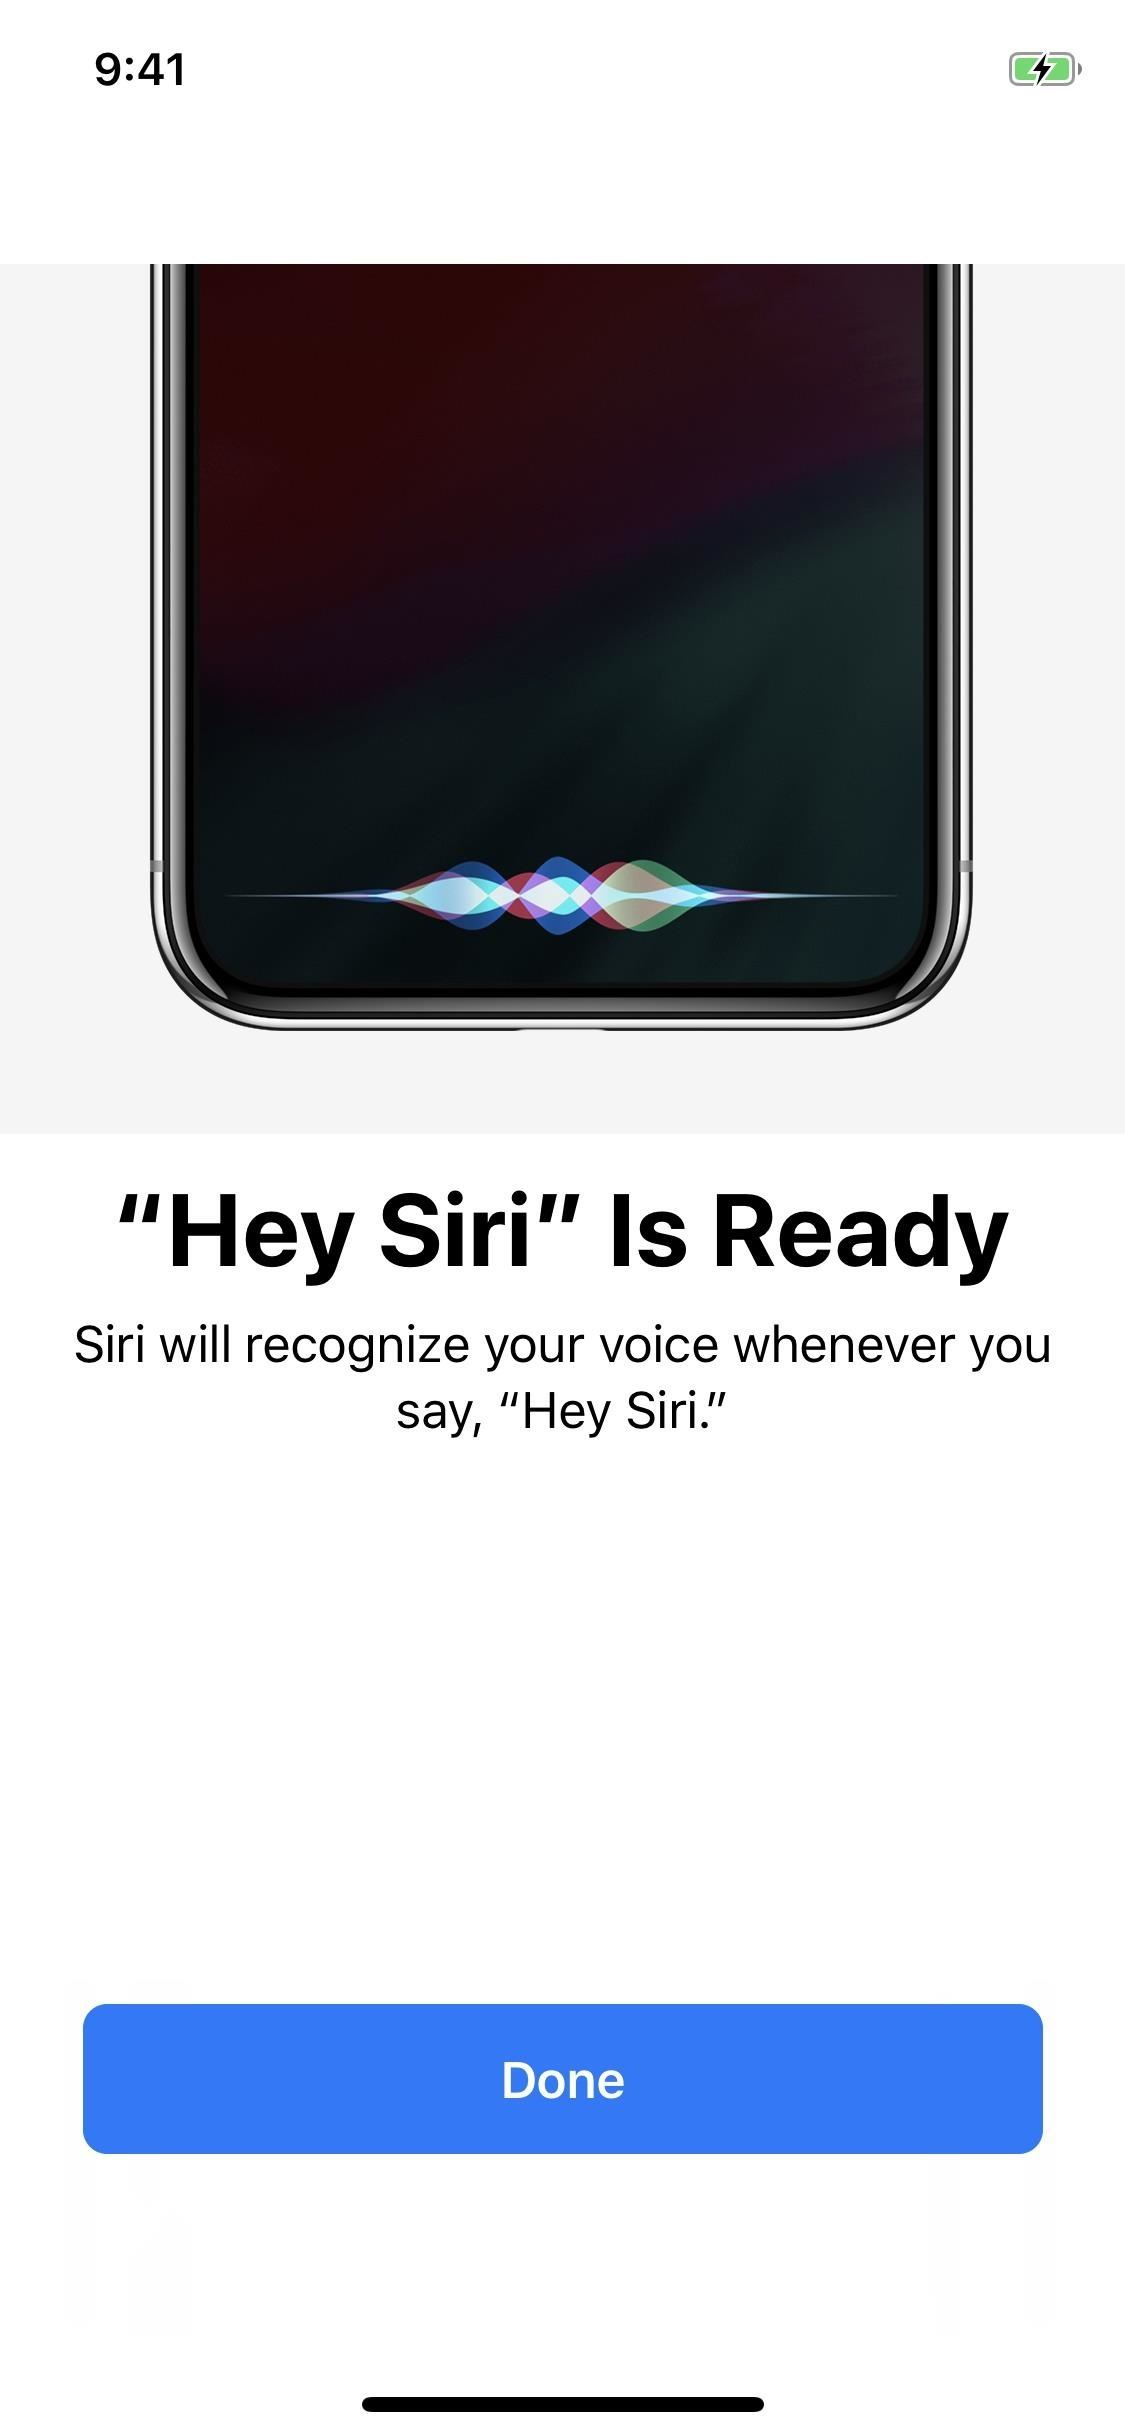 Siri 101: How to Use 'Hey Siri' Hands-Free on Your iPhone